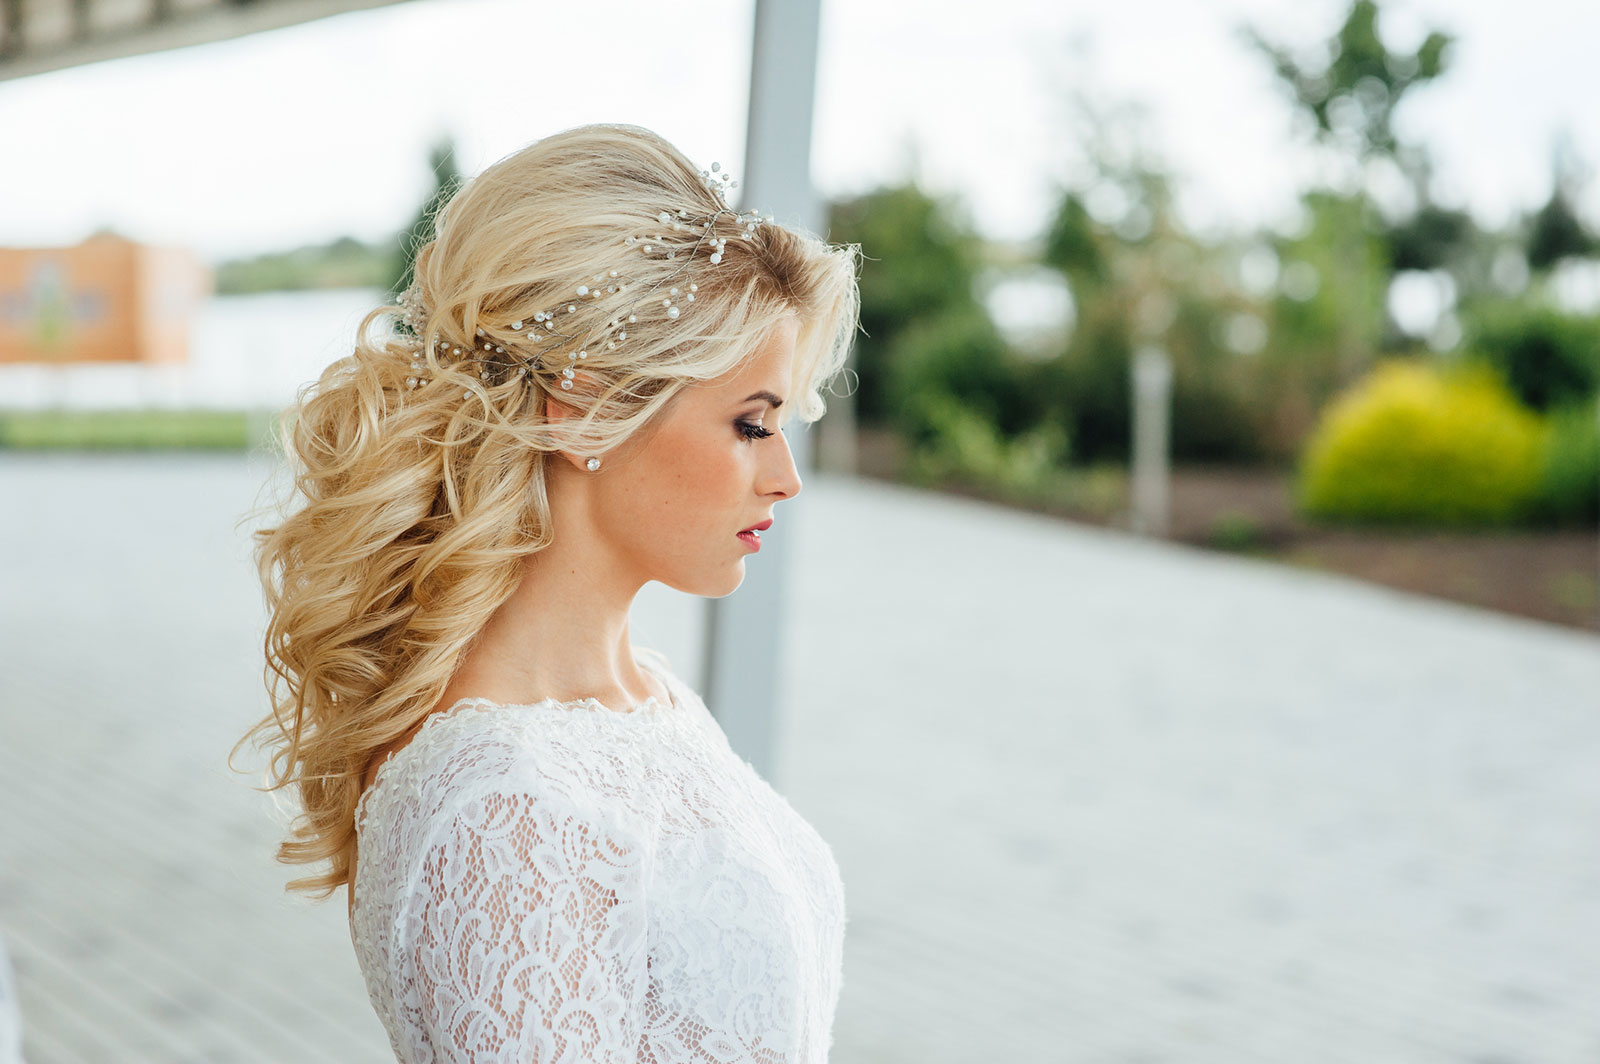 Long pinned and tied back Wedding hairstyle for women